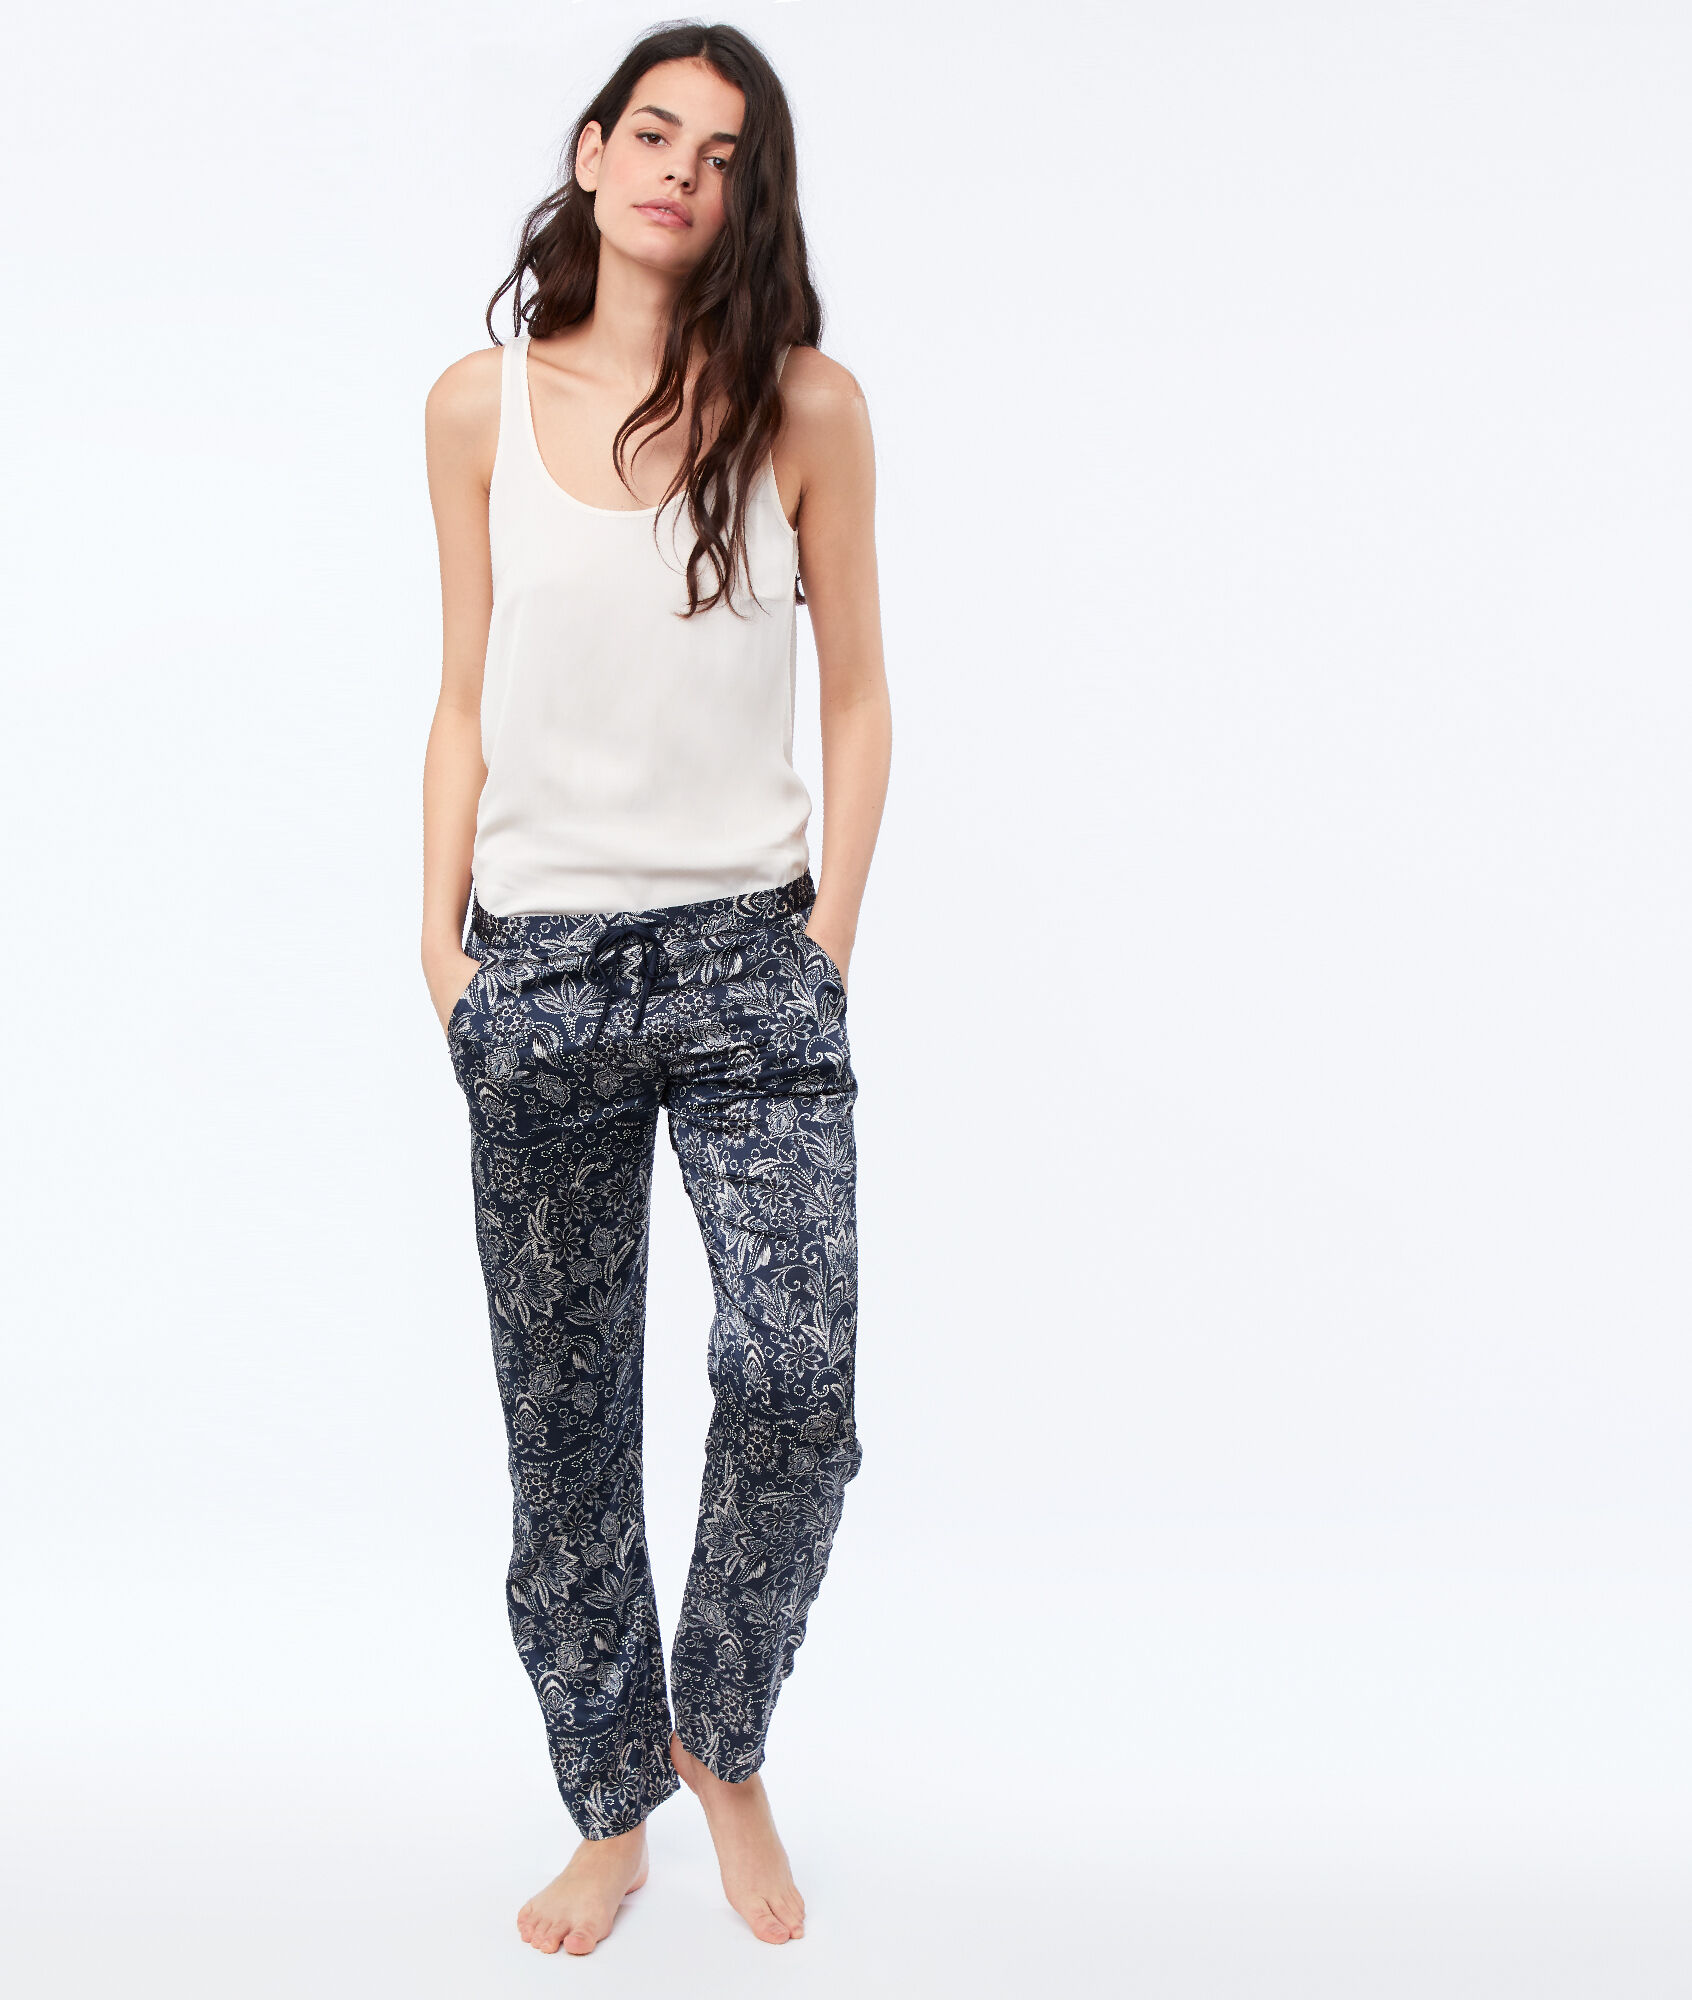 538a432db05f0 Pantalon de pyjama en satin - SELLY - BLEU - Etam